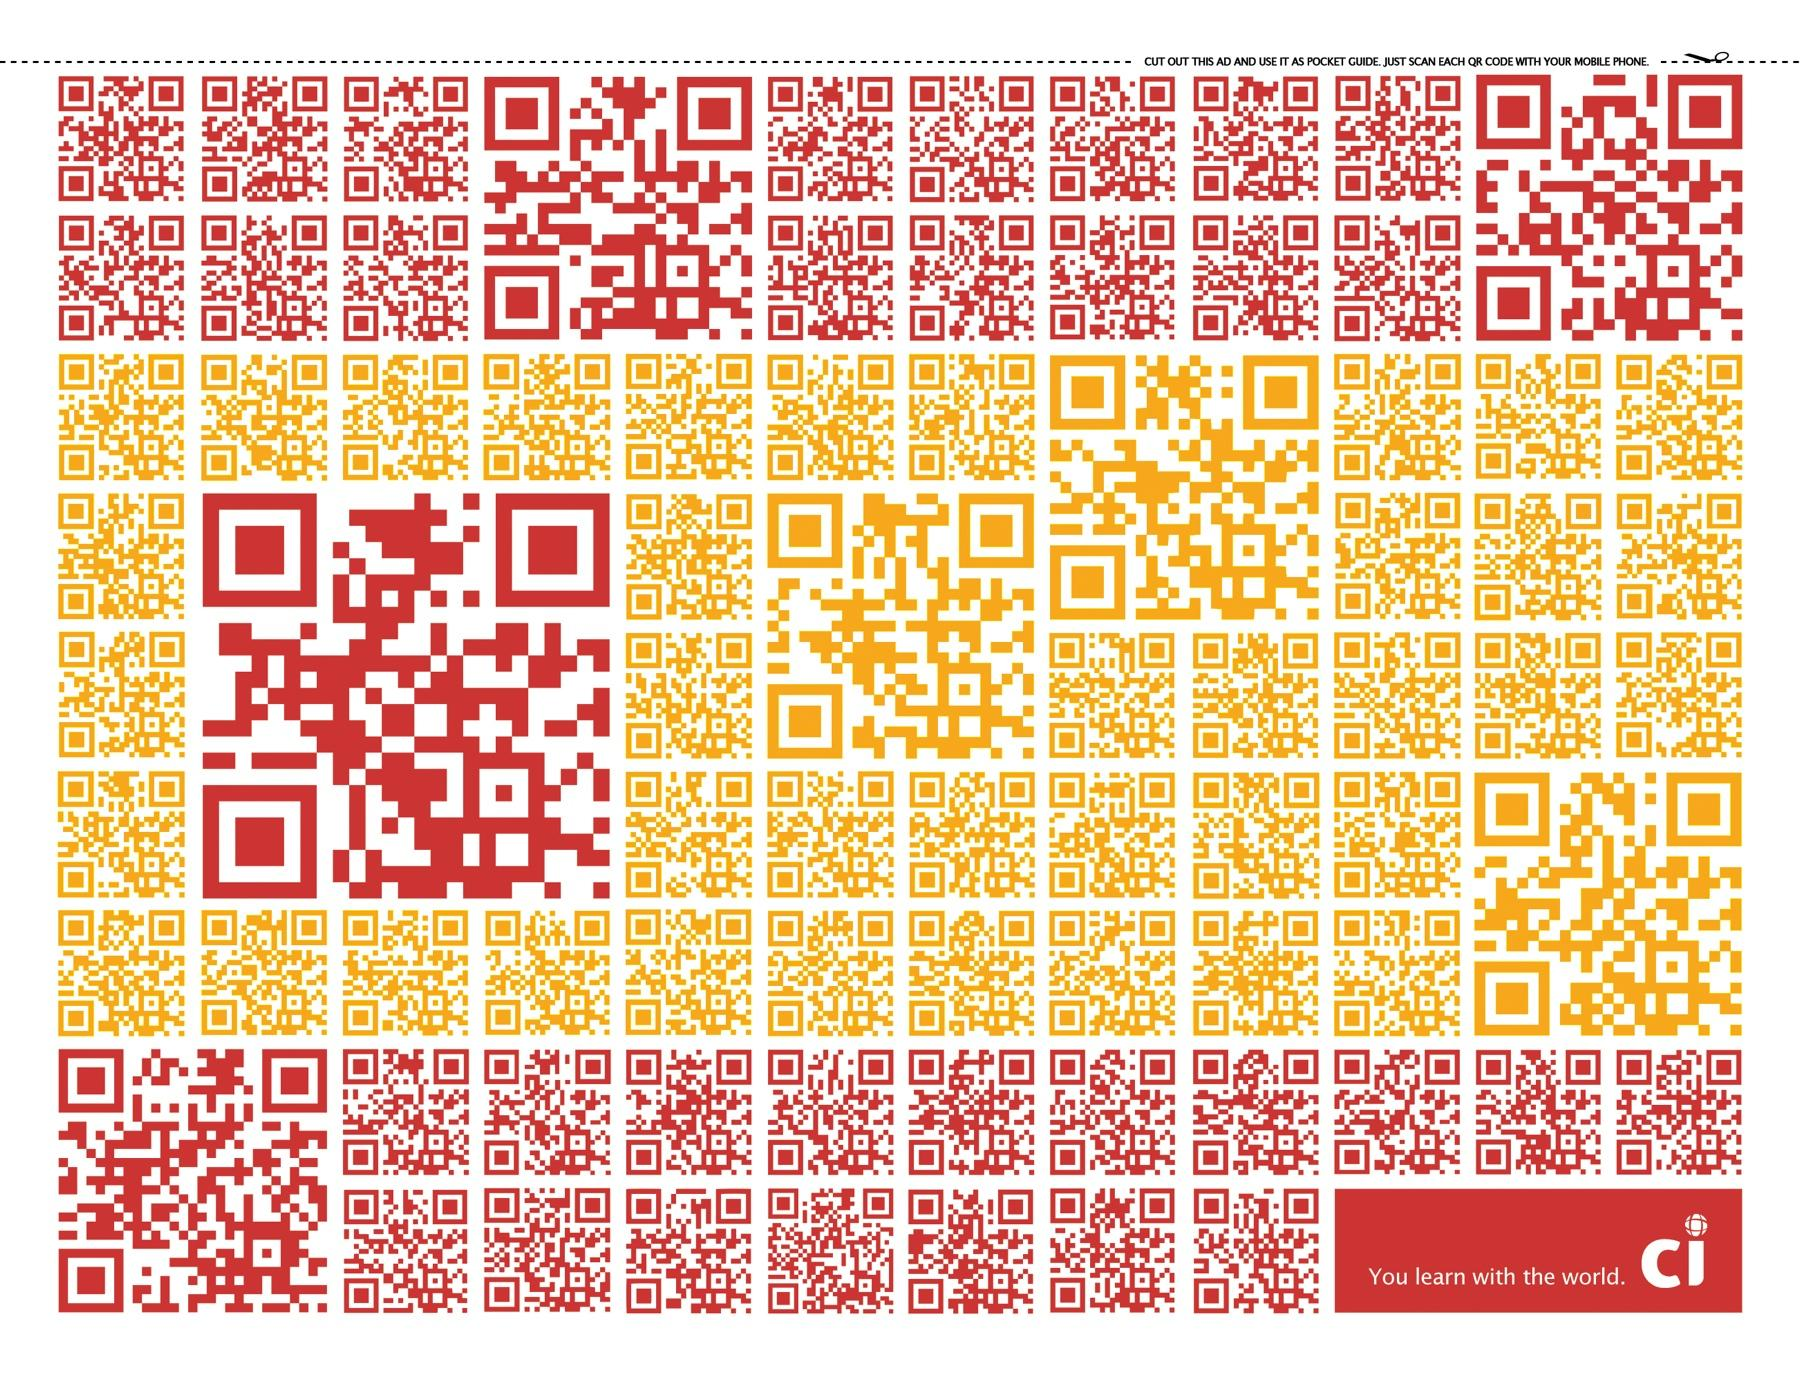 CI Intercâmbio Print Ad -  QR Code Flags, Spain